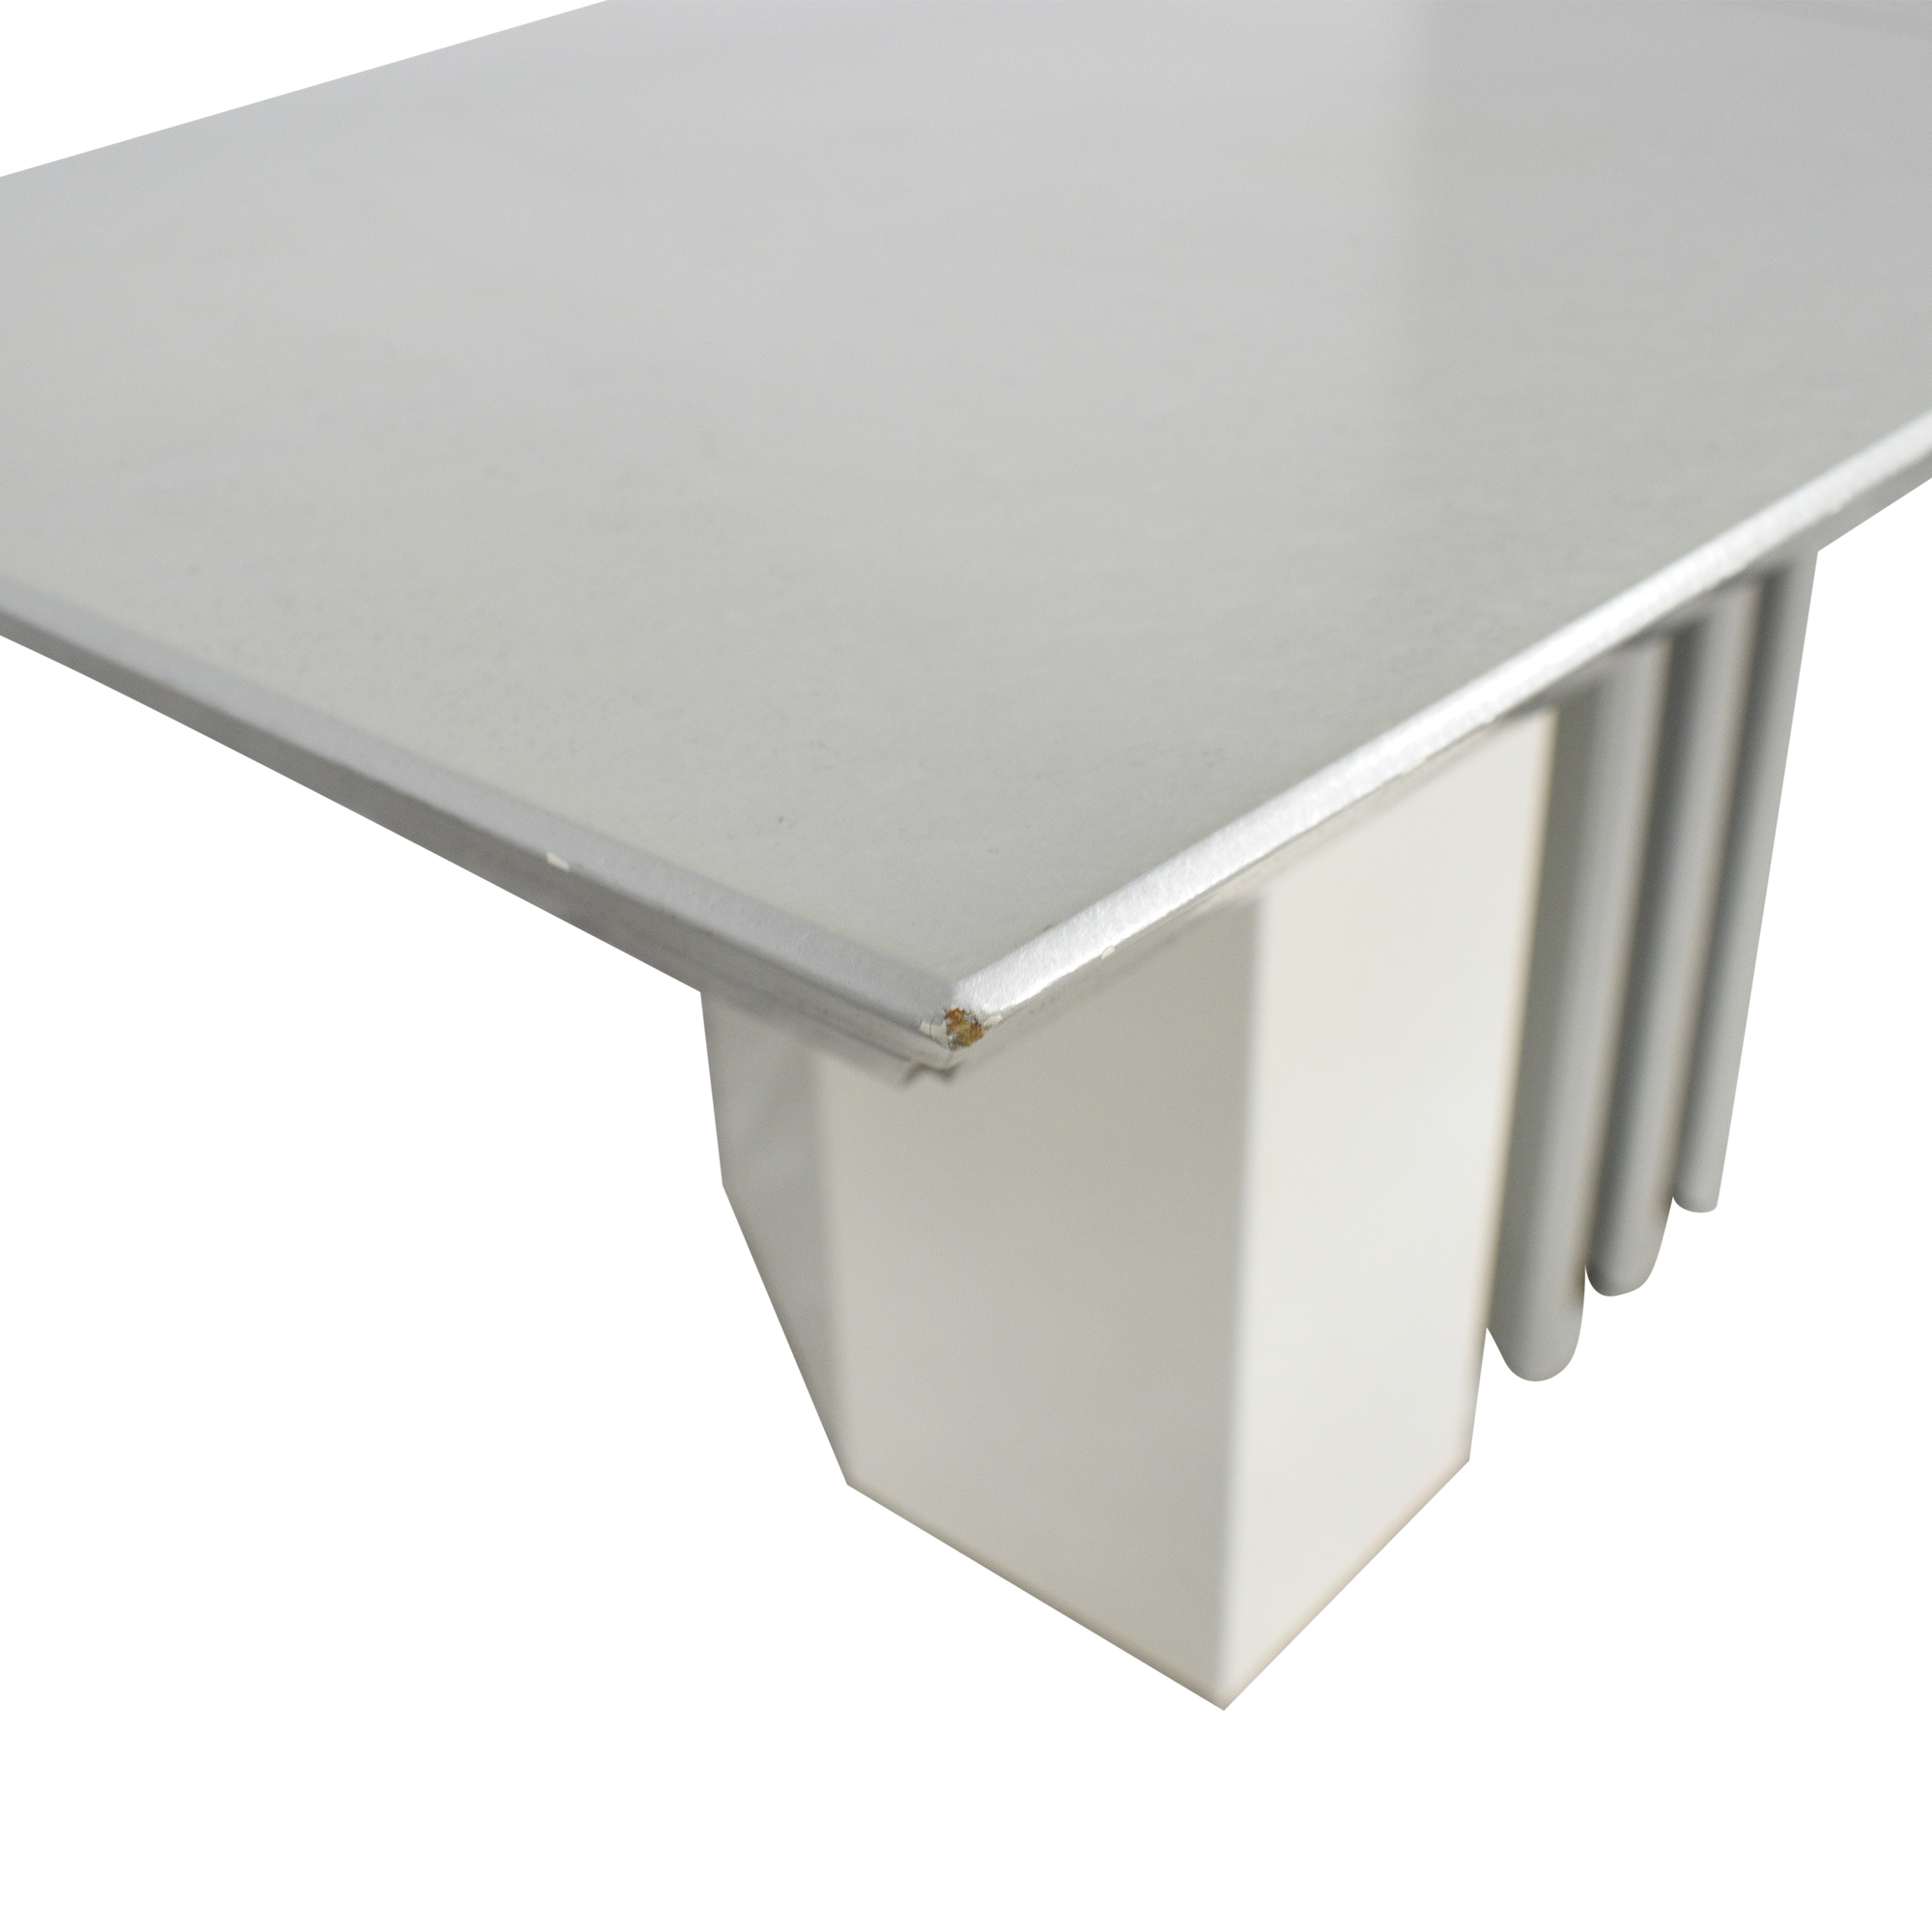 Rougier Modern Extendable Dining Table Rougier